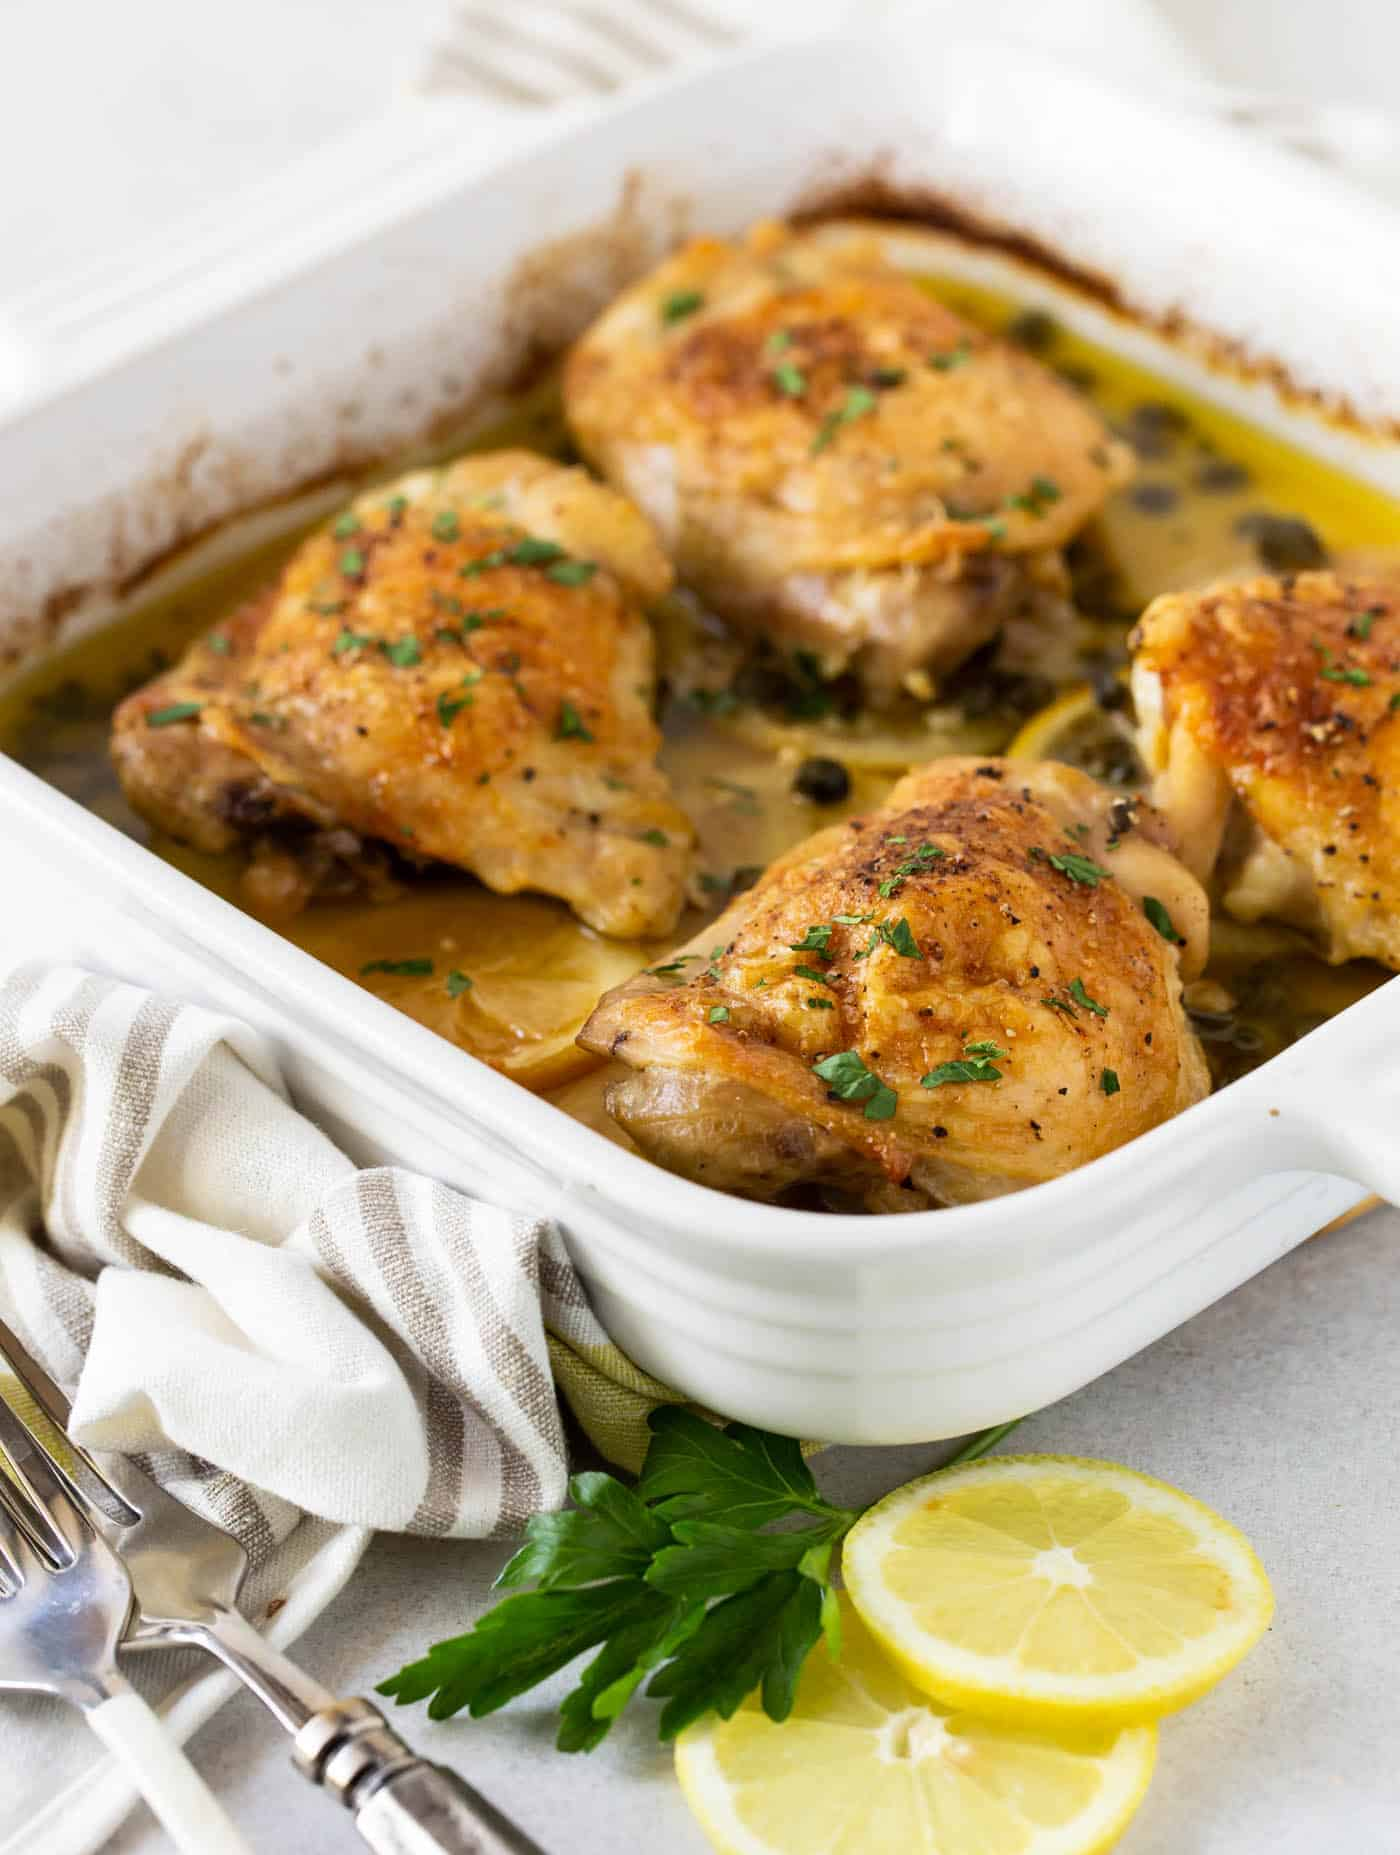 Baked Chicken Thighs with Capers in a white baking dish with parsley and lemon slices for garnish.